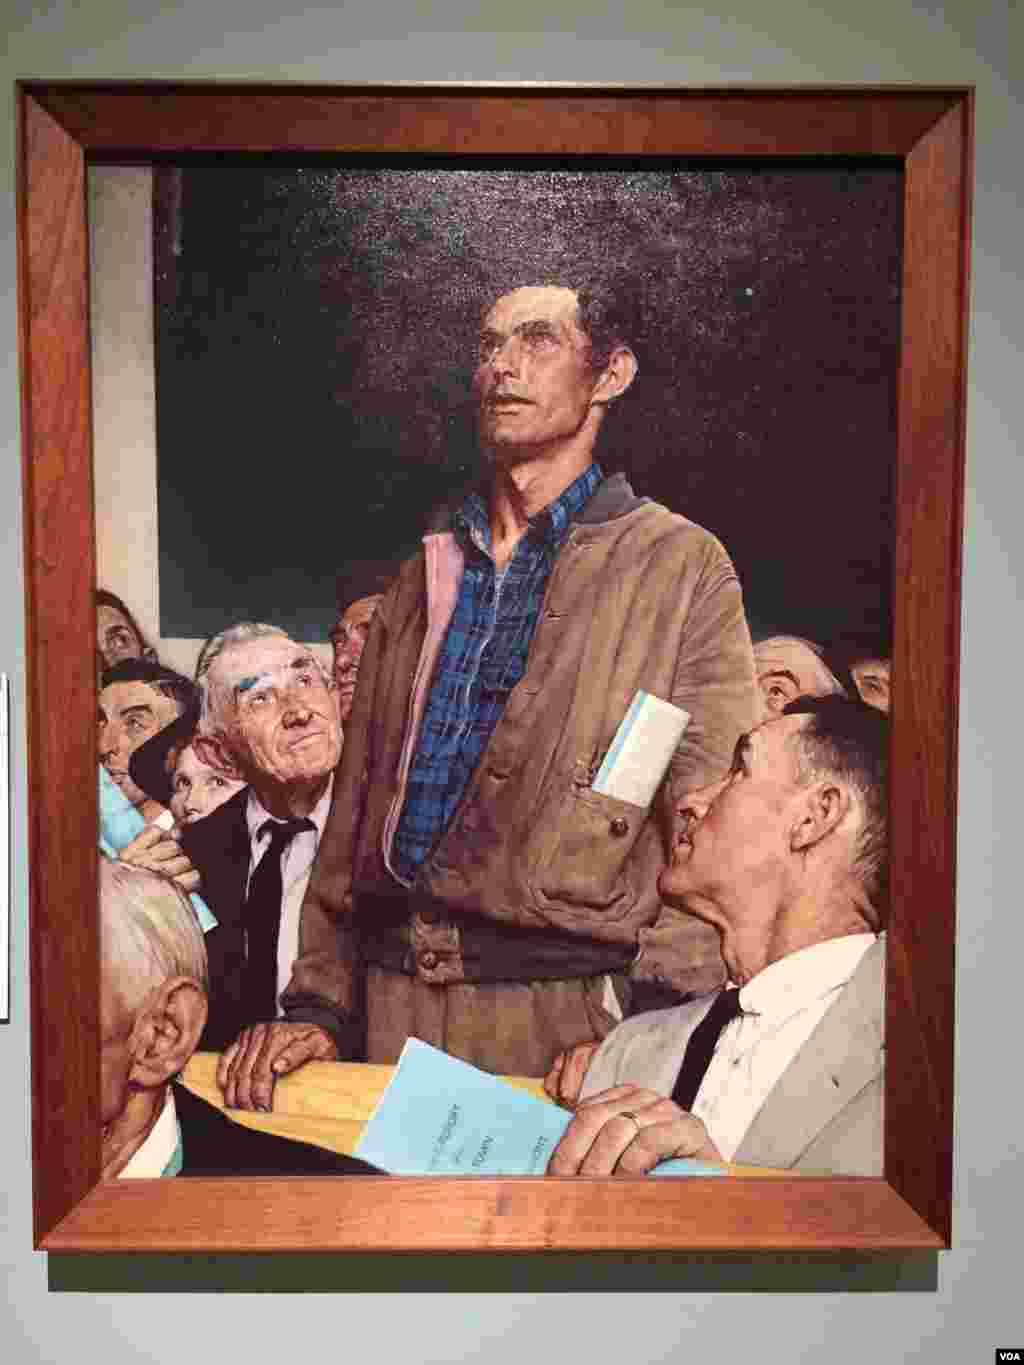 Rockwell's Freedom of Speech painting was inspired by a lone dissenter's passionate remarks at a Vermont town meeting. (J.Taboh/VOA)